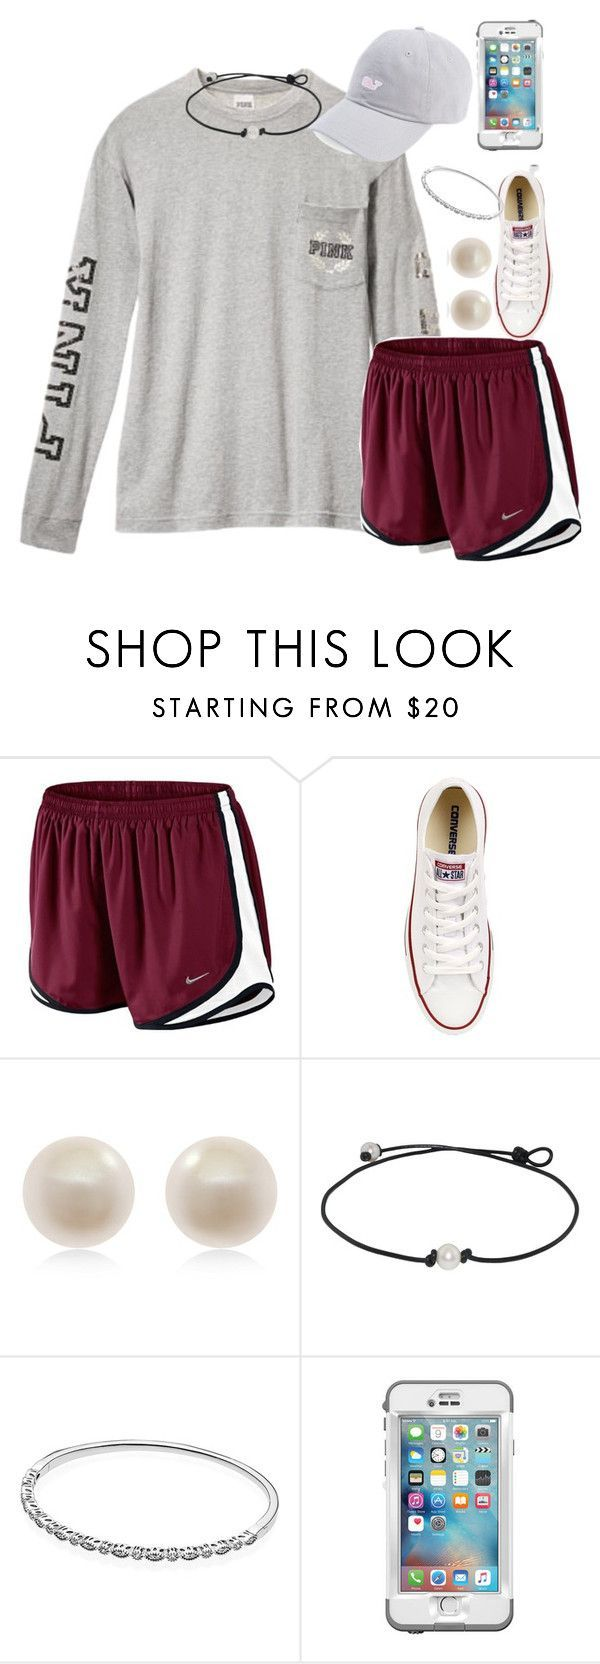 """Leavin the island"" by carolinaprep137 ❤ liked on Polyvore featuring NIKE, Converse, Links of London, Pandora and LifeProof"